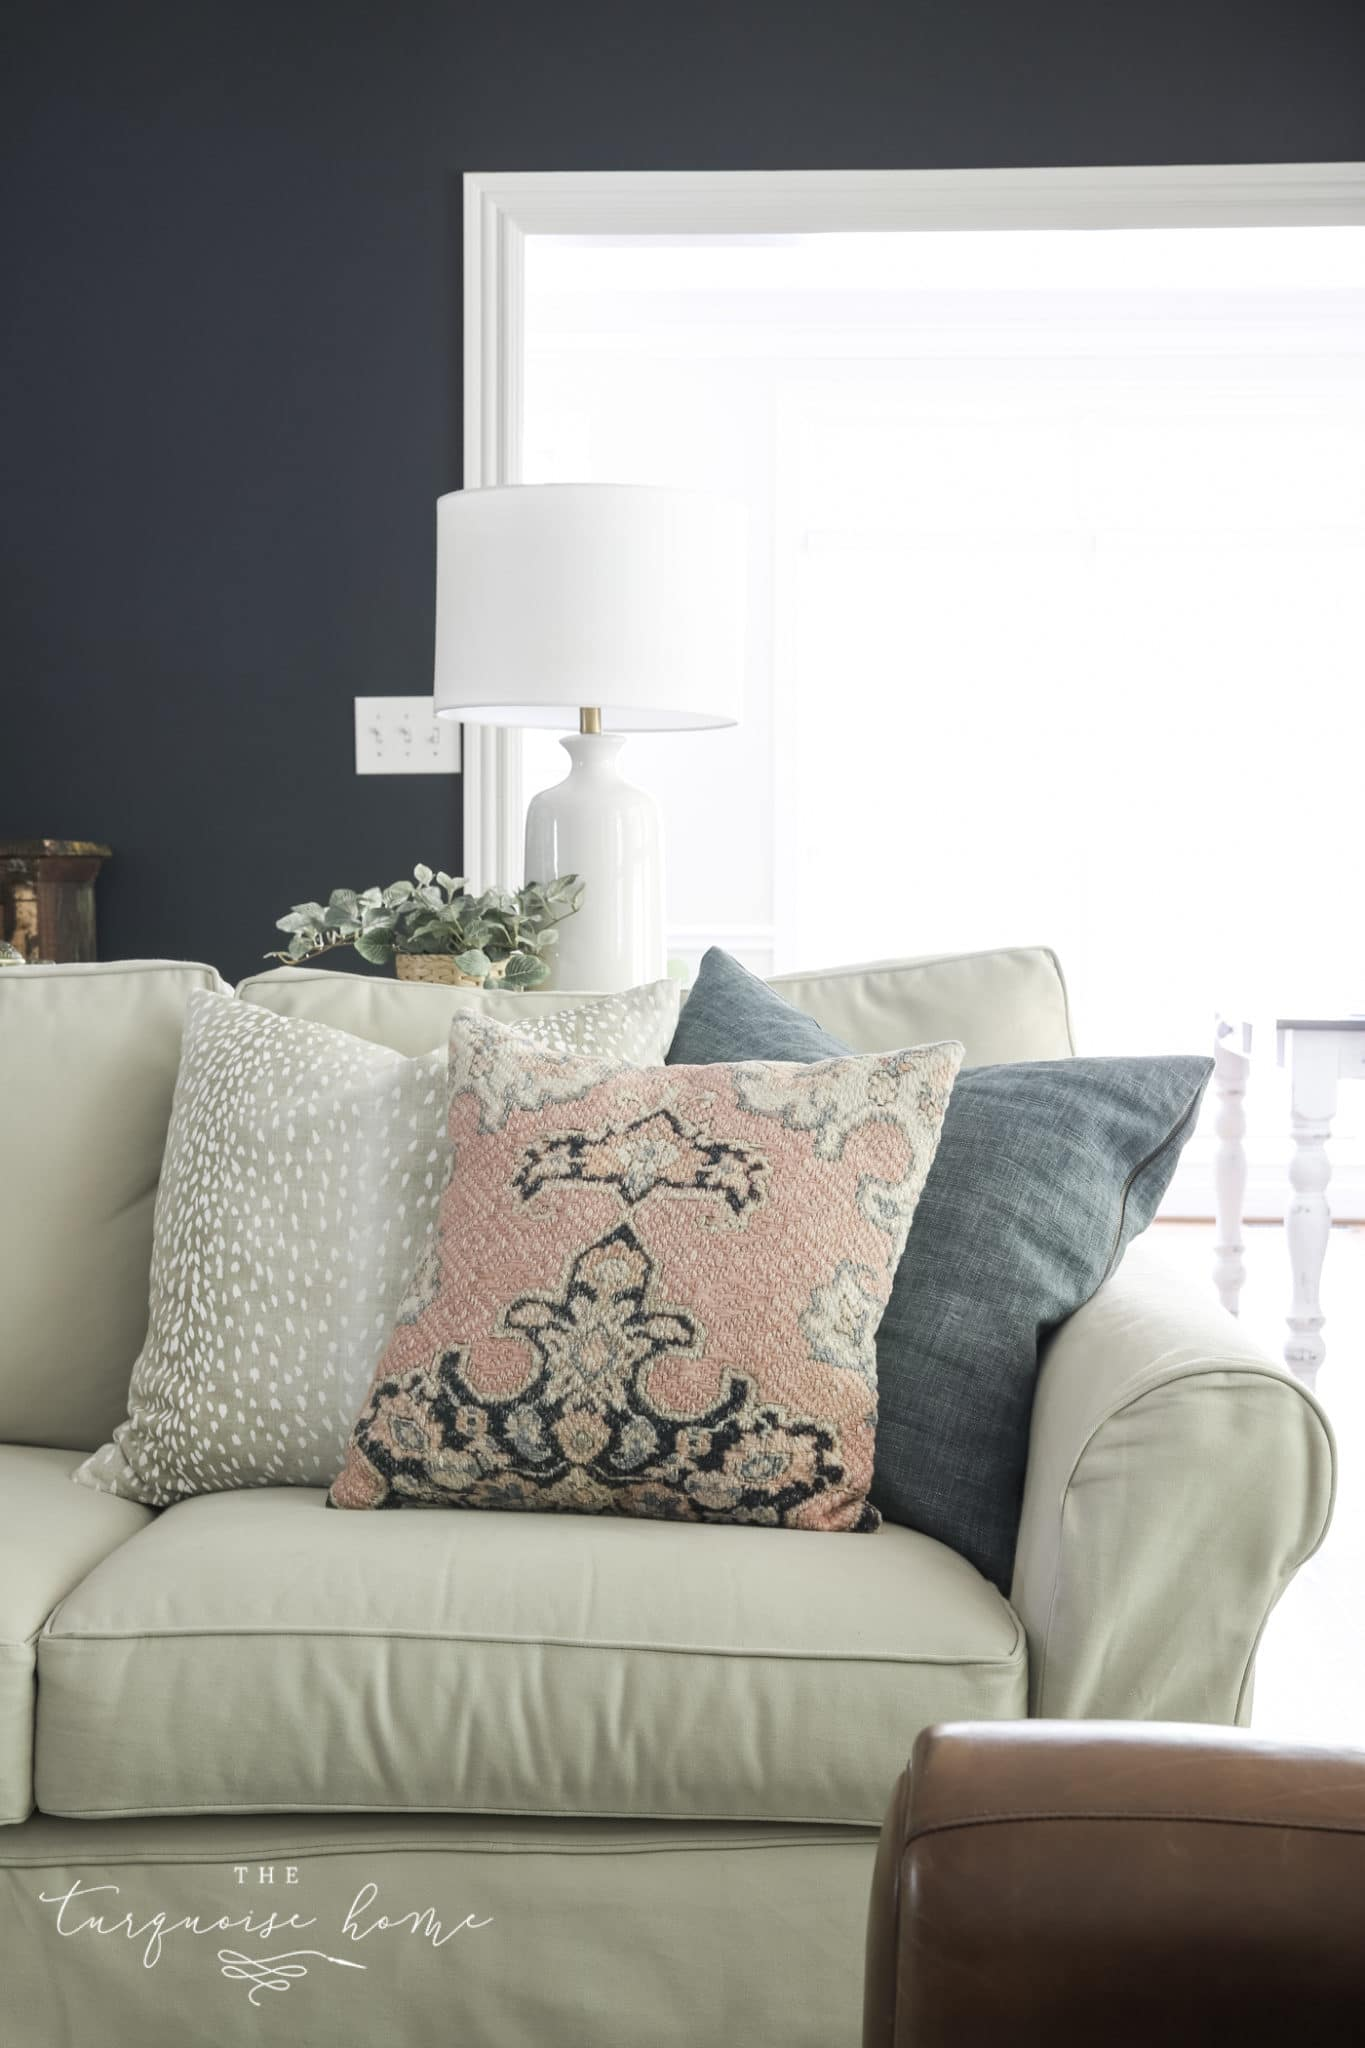 Throw Pillow Arrangement on a Sofa